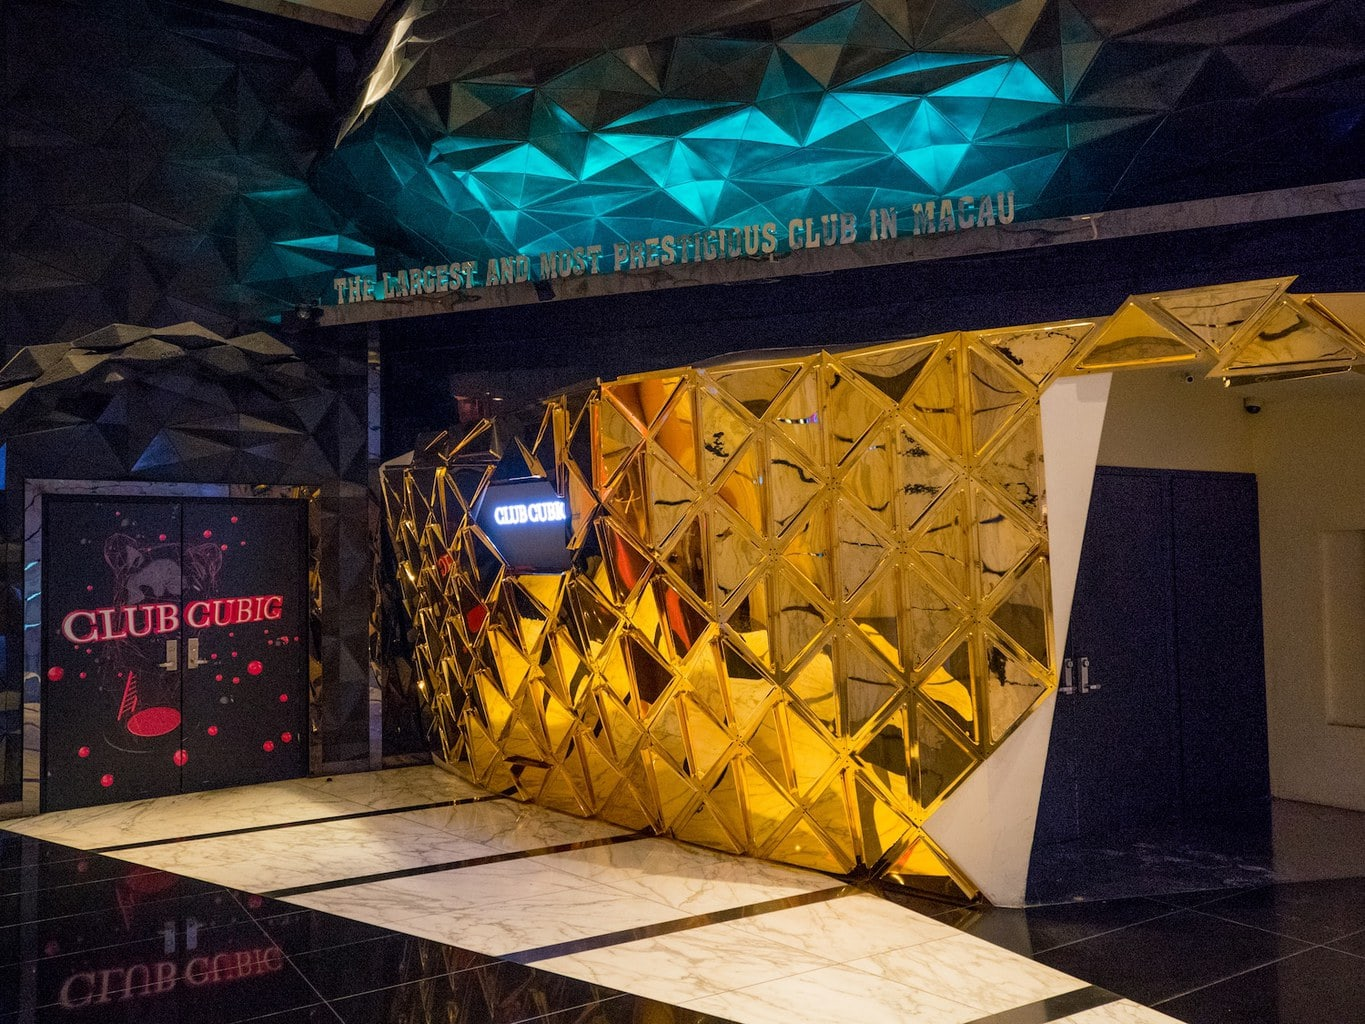 Looking for a party on your day trip to Macau - try CUBIC Club